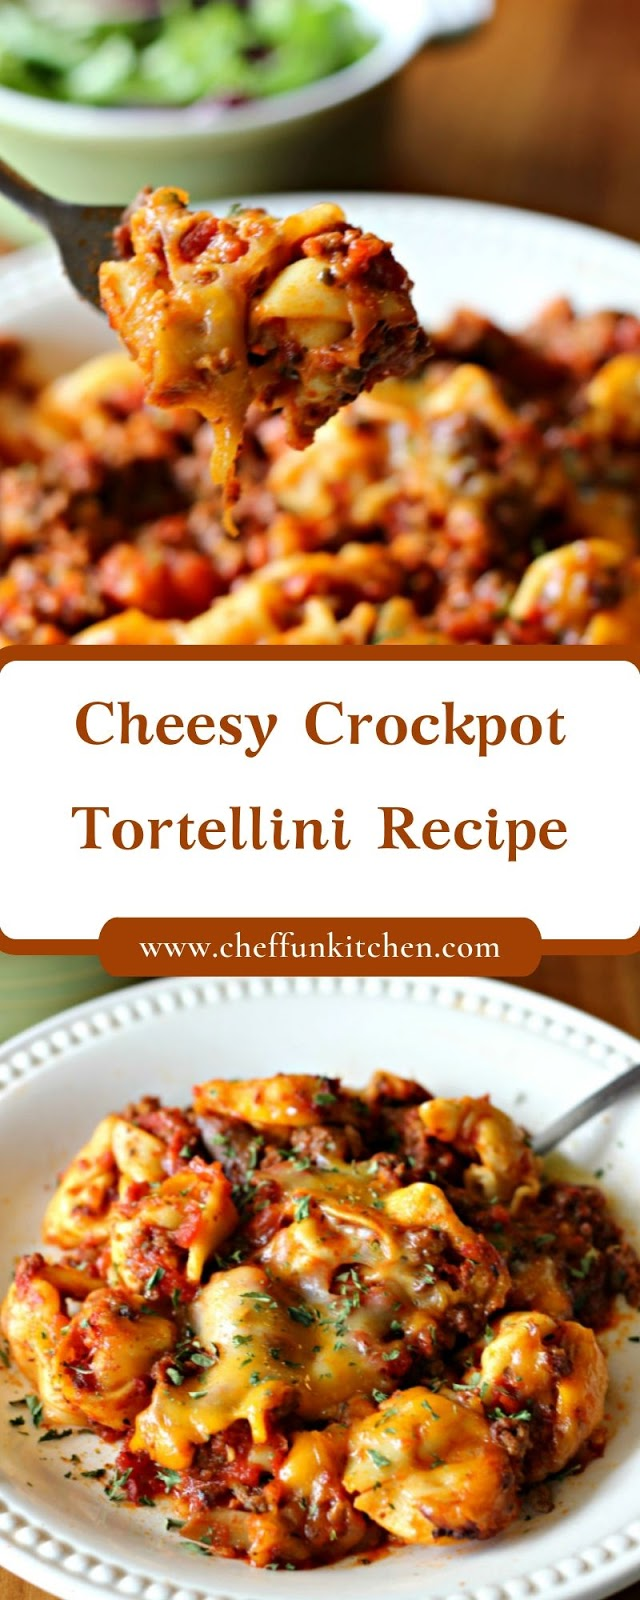 Cheesy Crockpot Tortellini Recipe